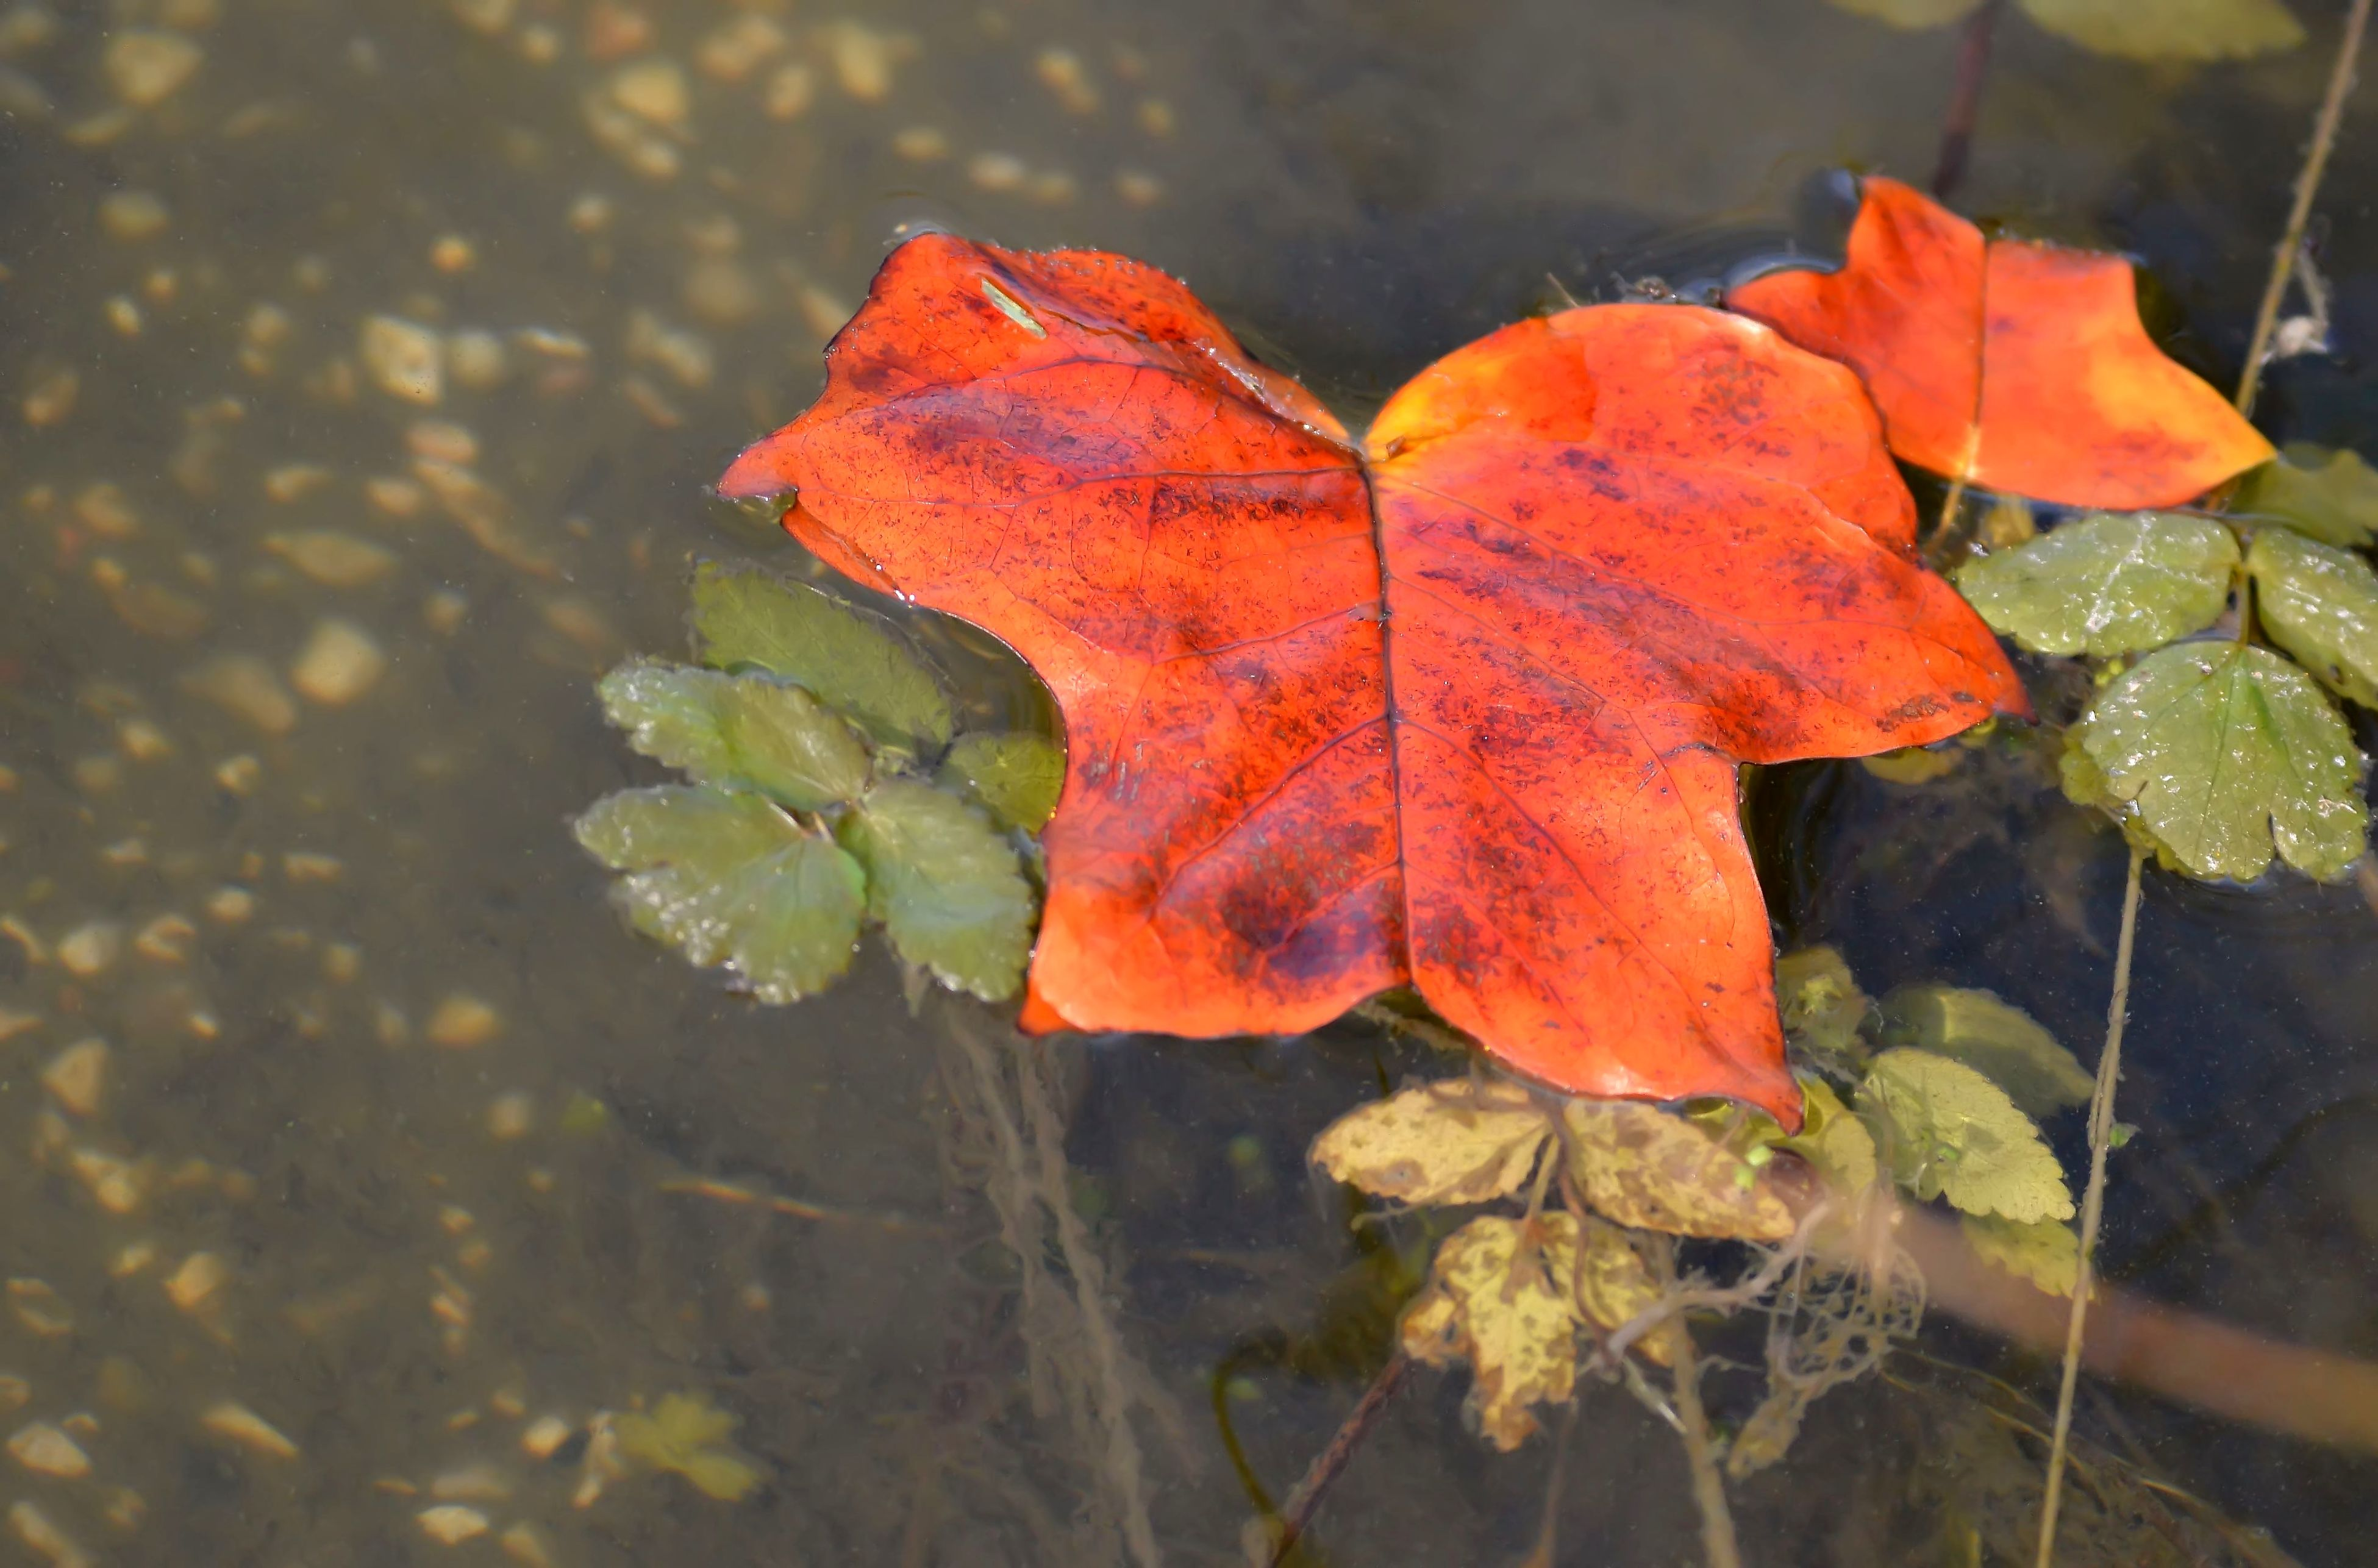 leaf, autumn, change, dry, nature, day, outdoors, close-up, fragility, no people, maple leaf, high angle view, water, focus on foreground, plant, beauty in nature, maple, growth, freshness